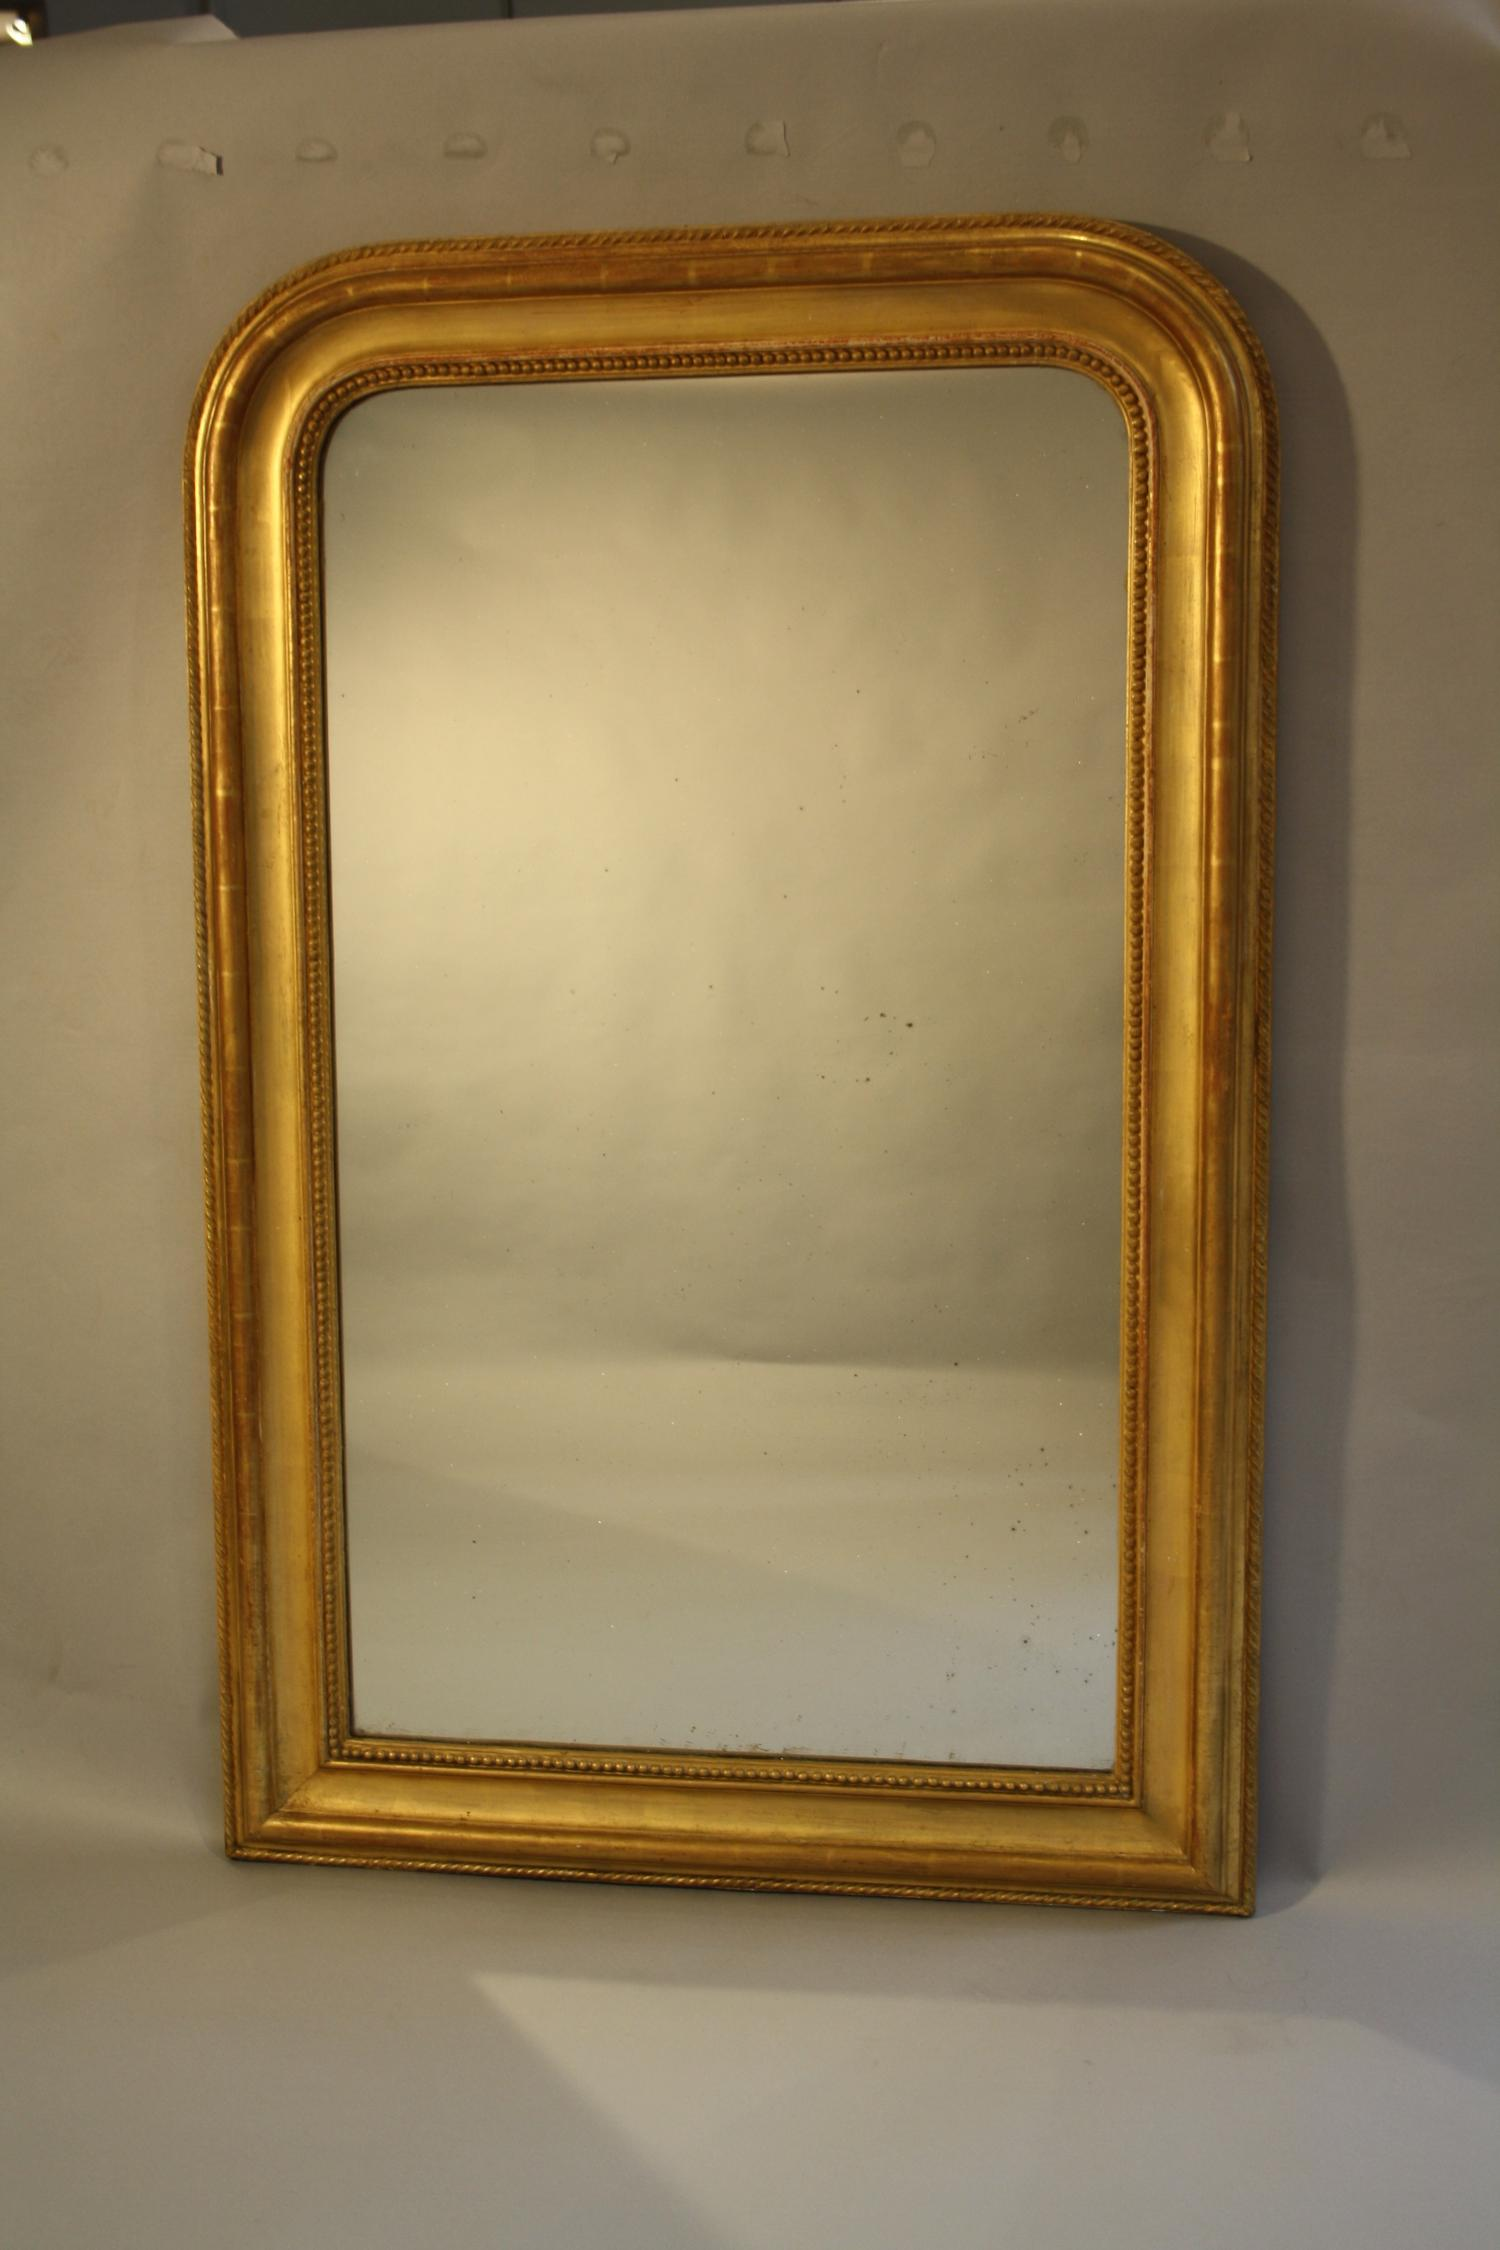 Soft gold gilt archtop overmantle